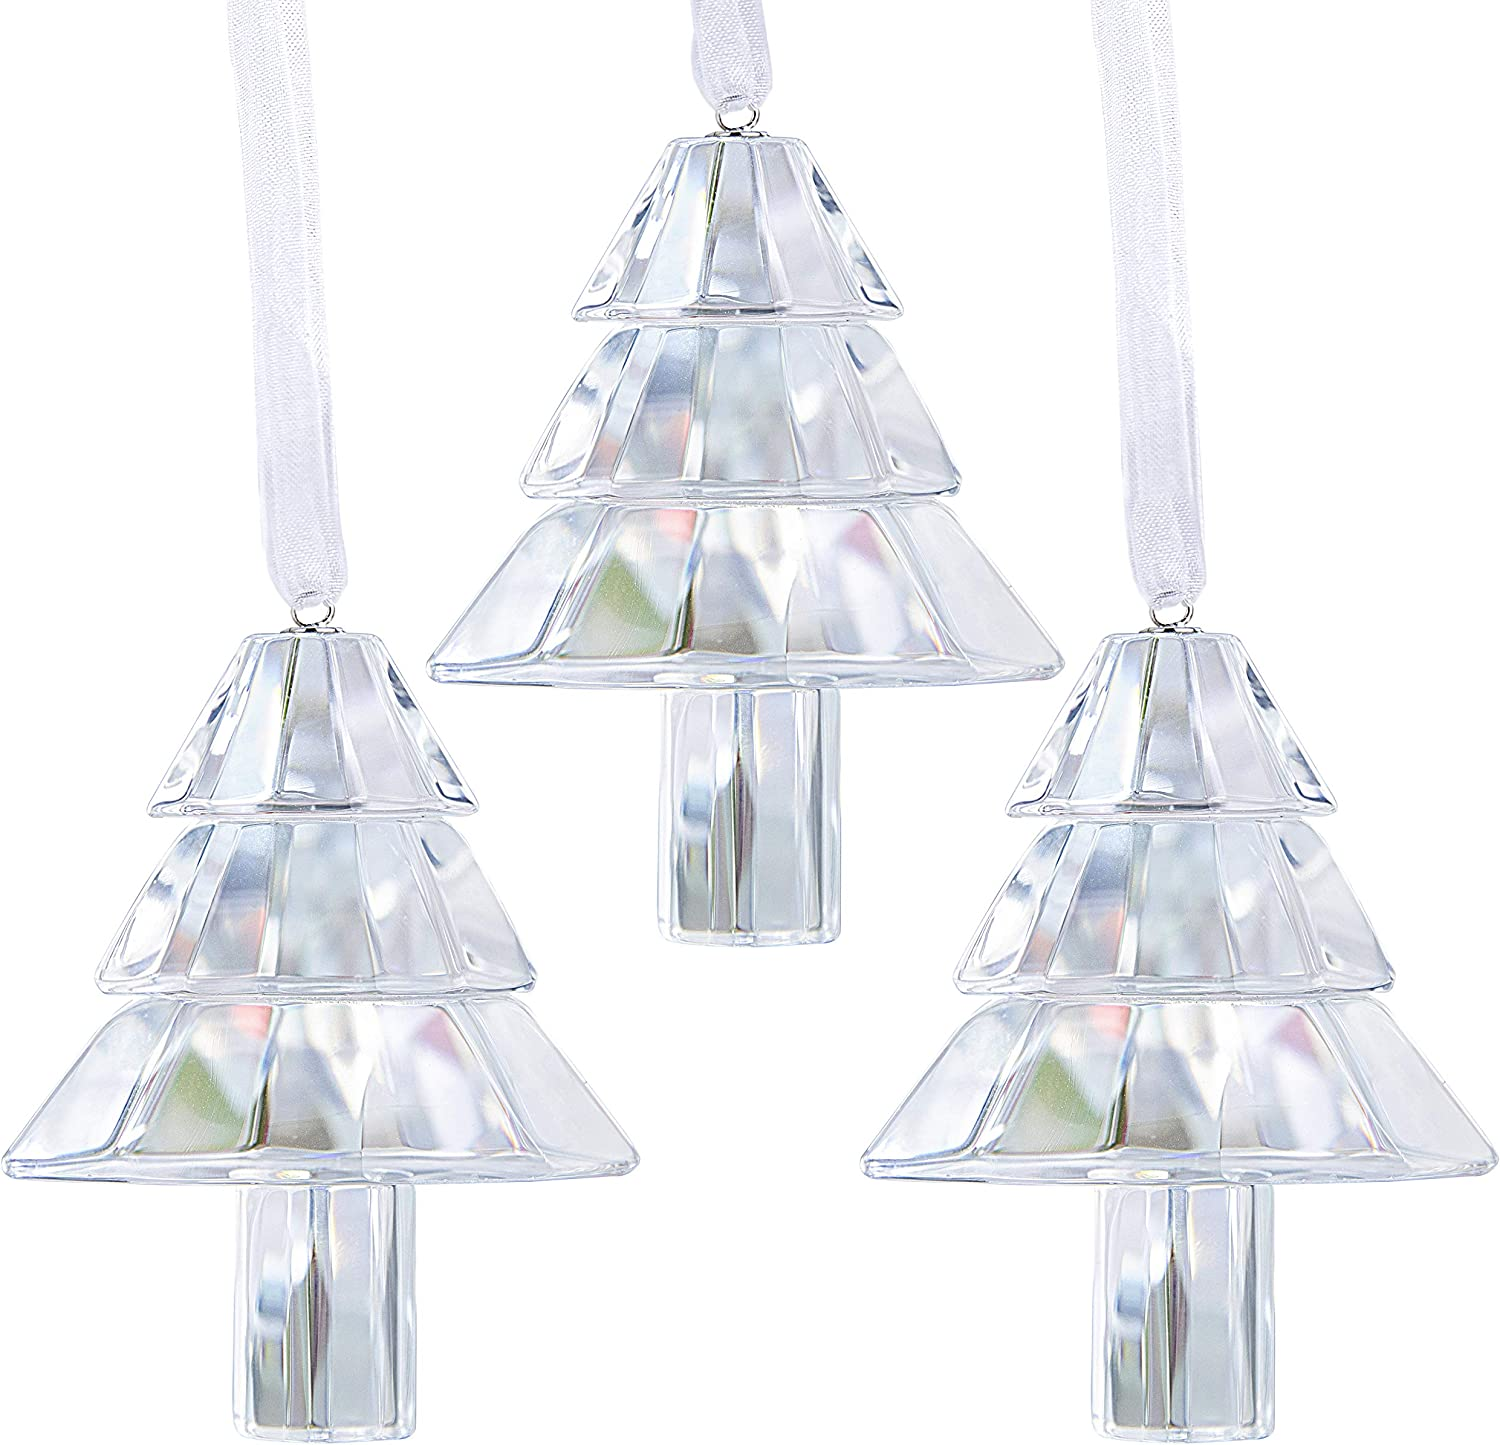 HDCRYSTALGIFTS 3pcs Crystal Christmas Tree Hanging Figurine Glass Holiday Ornaments Sparkly Decoration Accessories Party Home Decor(with Gift Box)